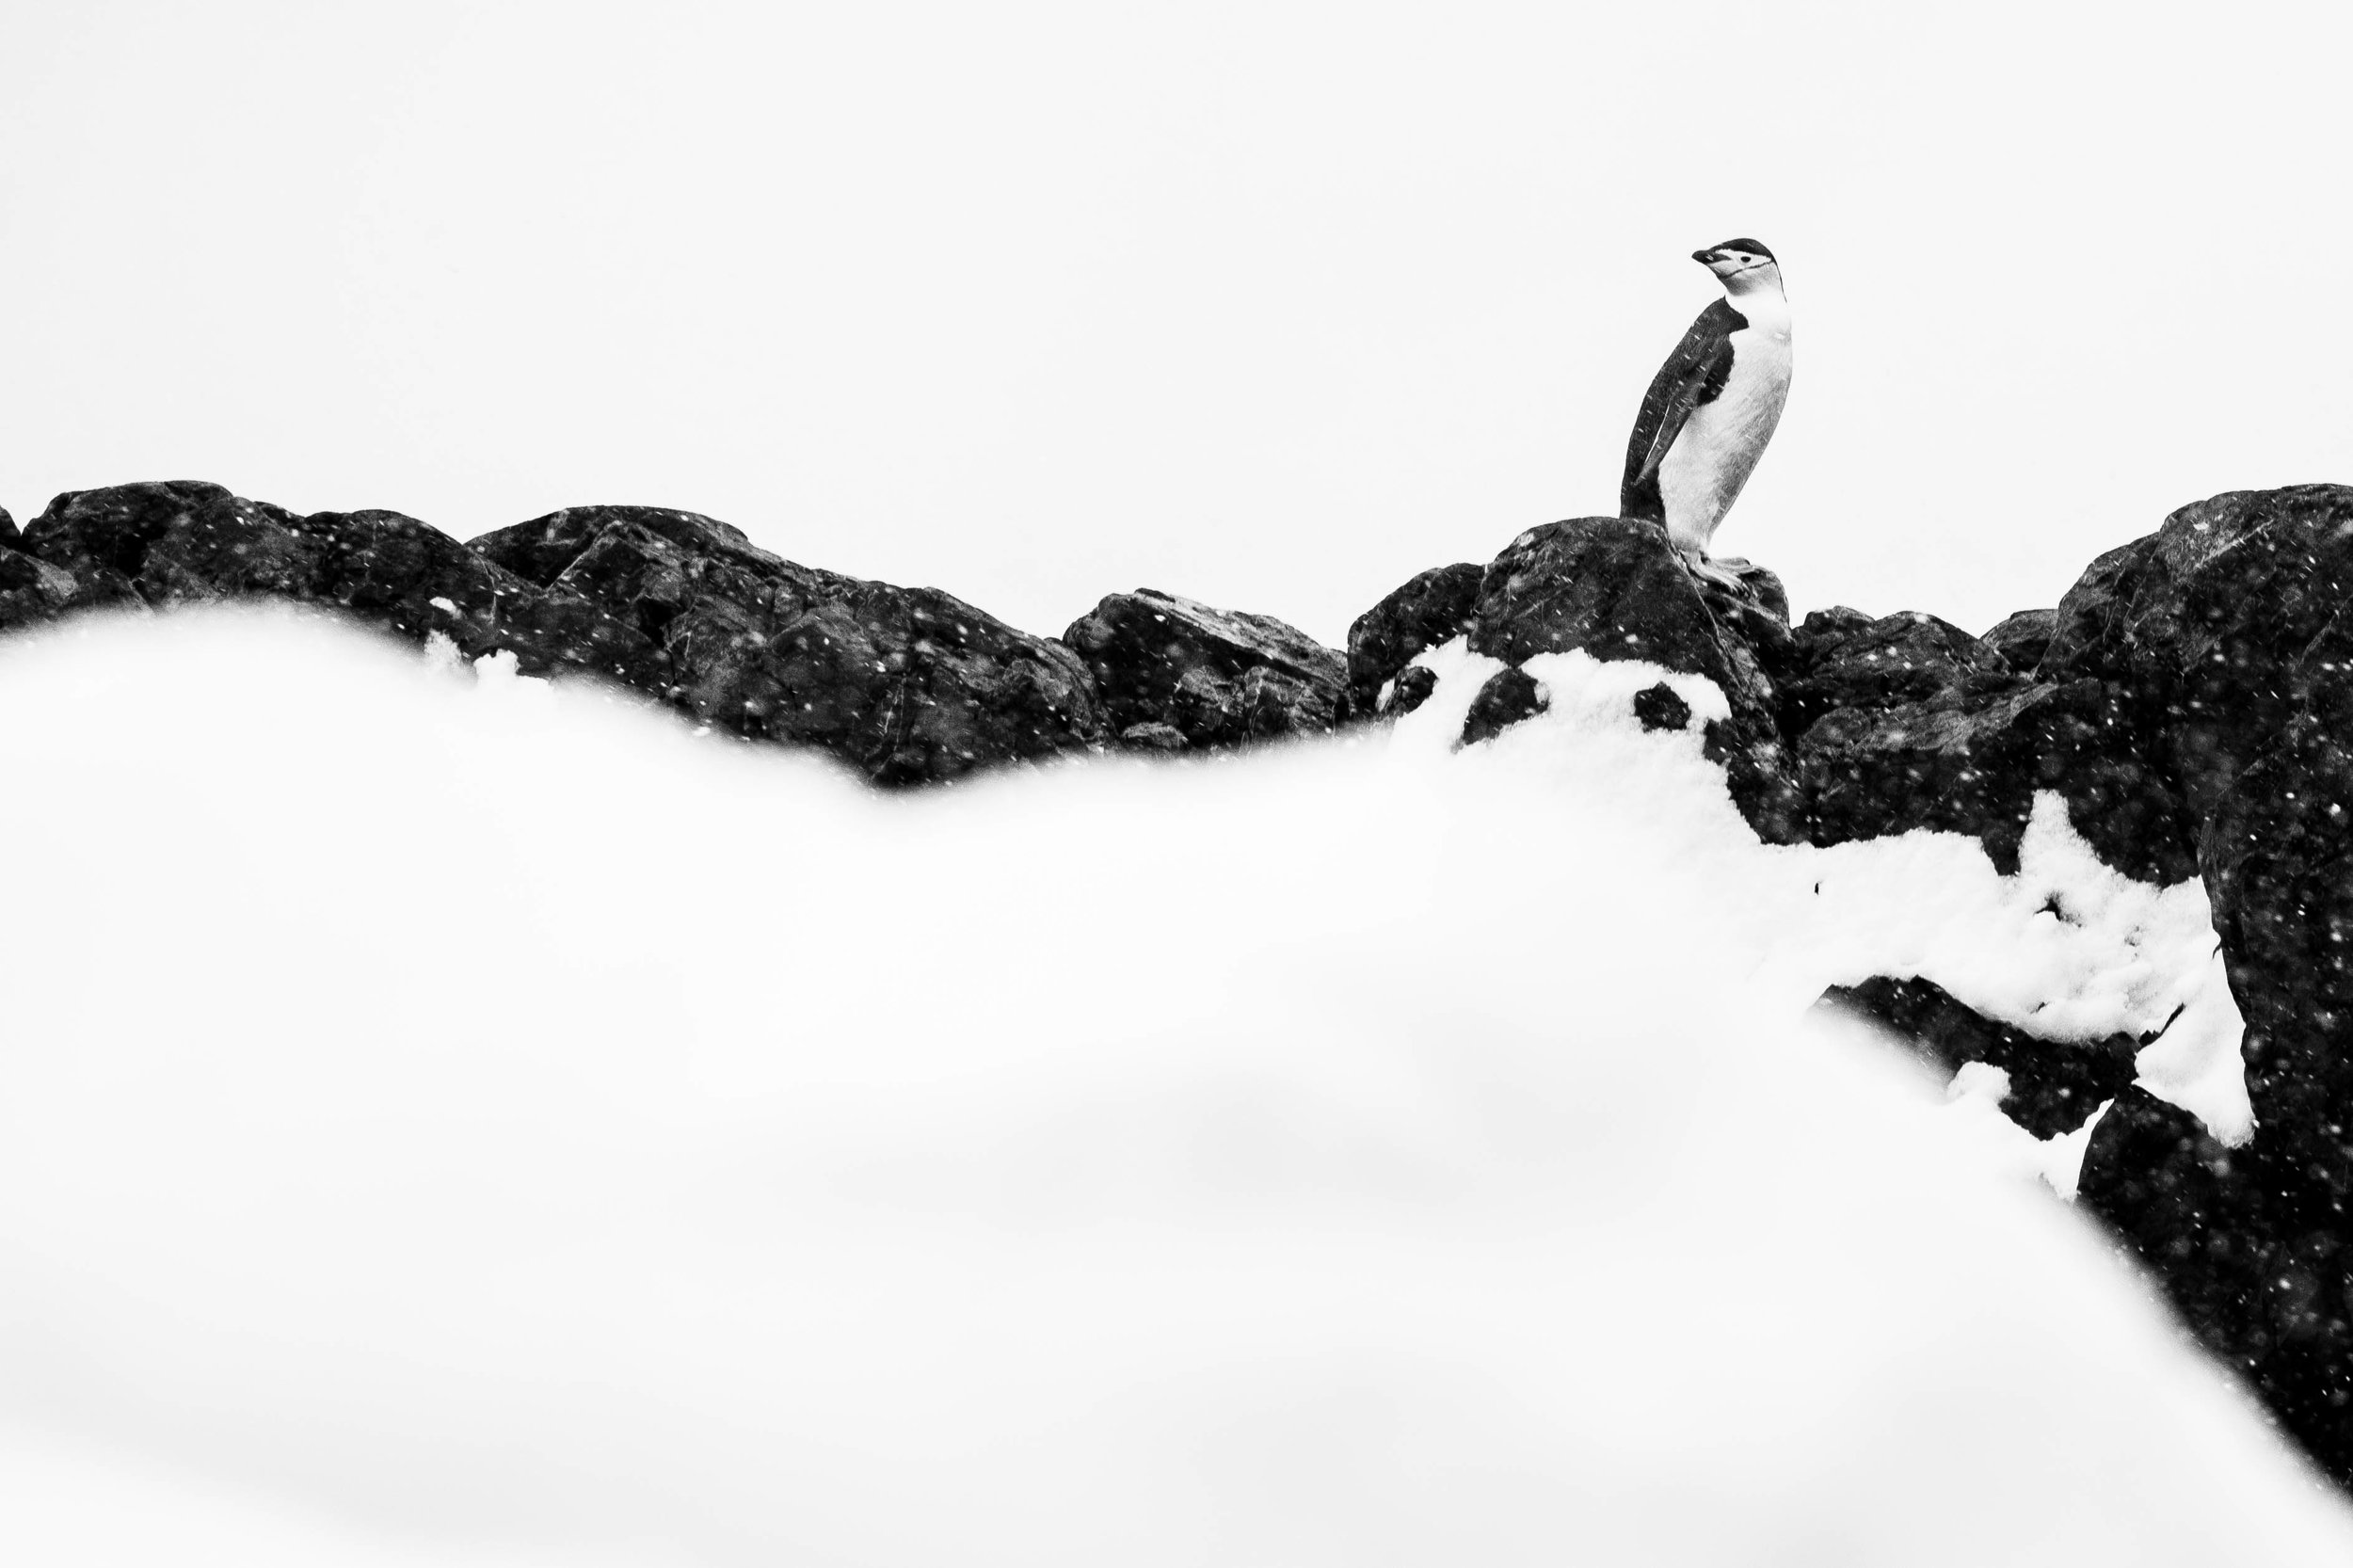 Weathering the Storm  A bold Chinstrap Penguin stands resolute against a battling snow storm approaching from the rough sea. Having been out fishing, this charismatic penguin had a long climb back to the security of its colony, which was hidden behind the mountain tops. I have a lot of admiration for these small birds as they prevail in seemingly inhospitable environments.